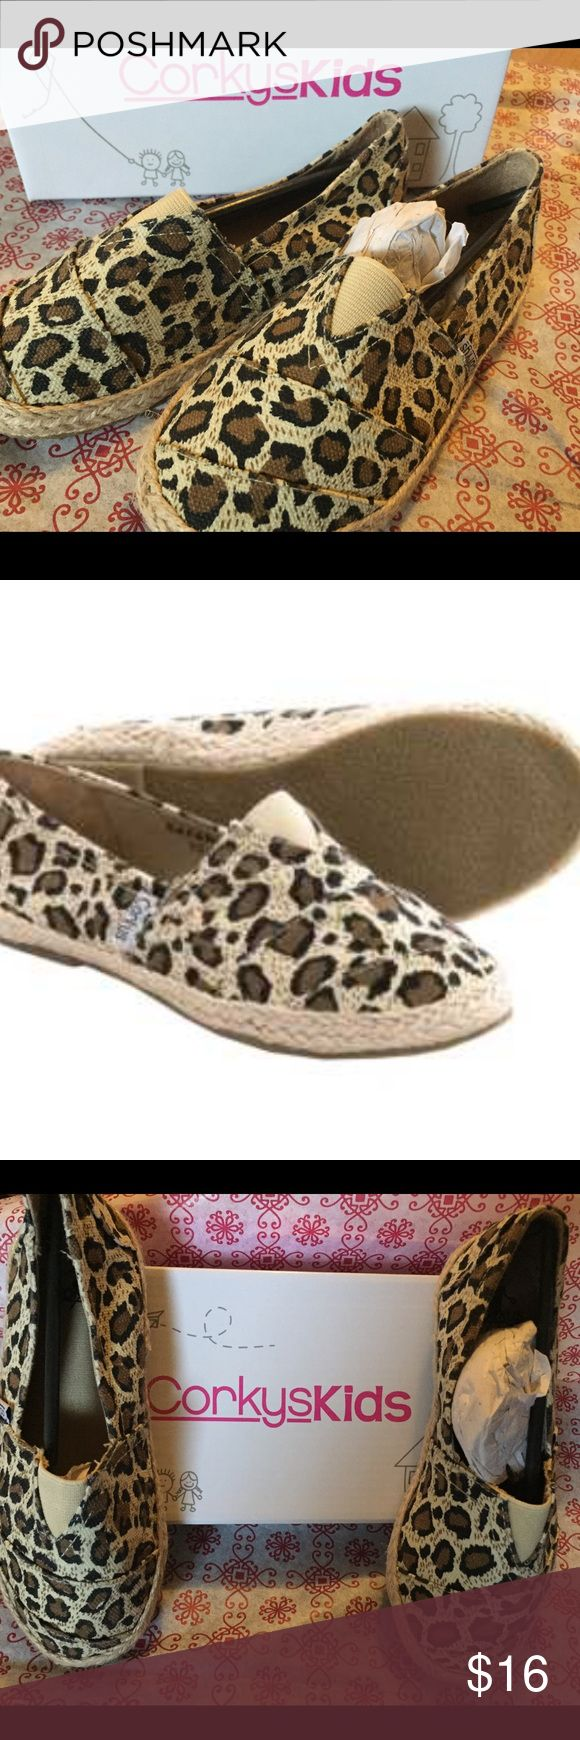 New 🎉Corkys Kids Safari Cheetah Shoes Size 13 New, shipped in the box.  Corkys Kids Safari Cheetah Shoes Size 13. These will be sent ready to give, I will send them gift wrapped!:) offers welcome Corky Shoes